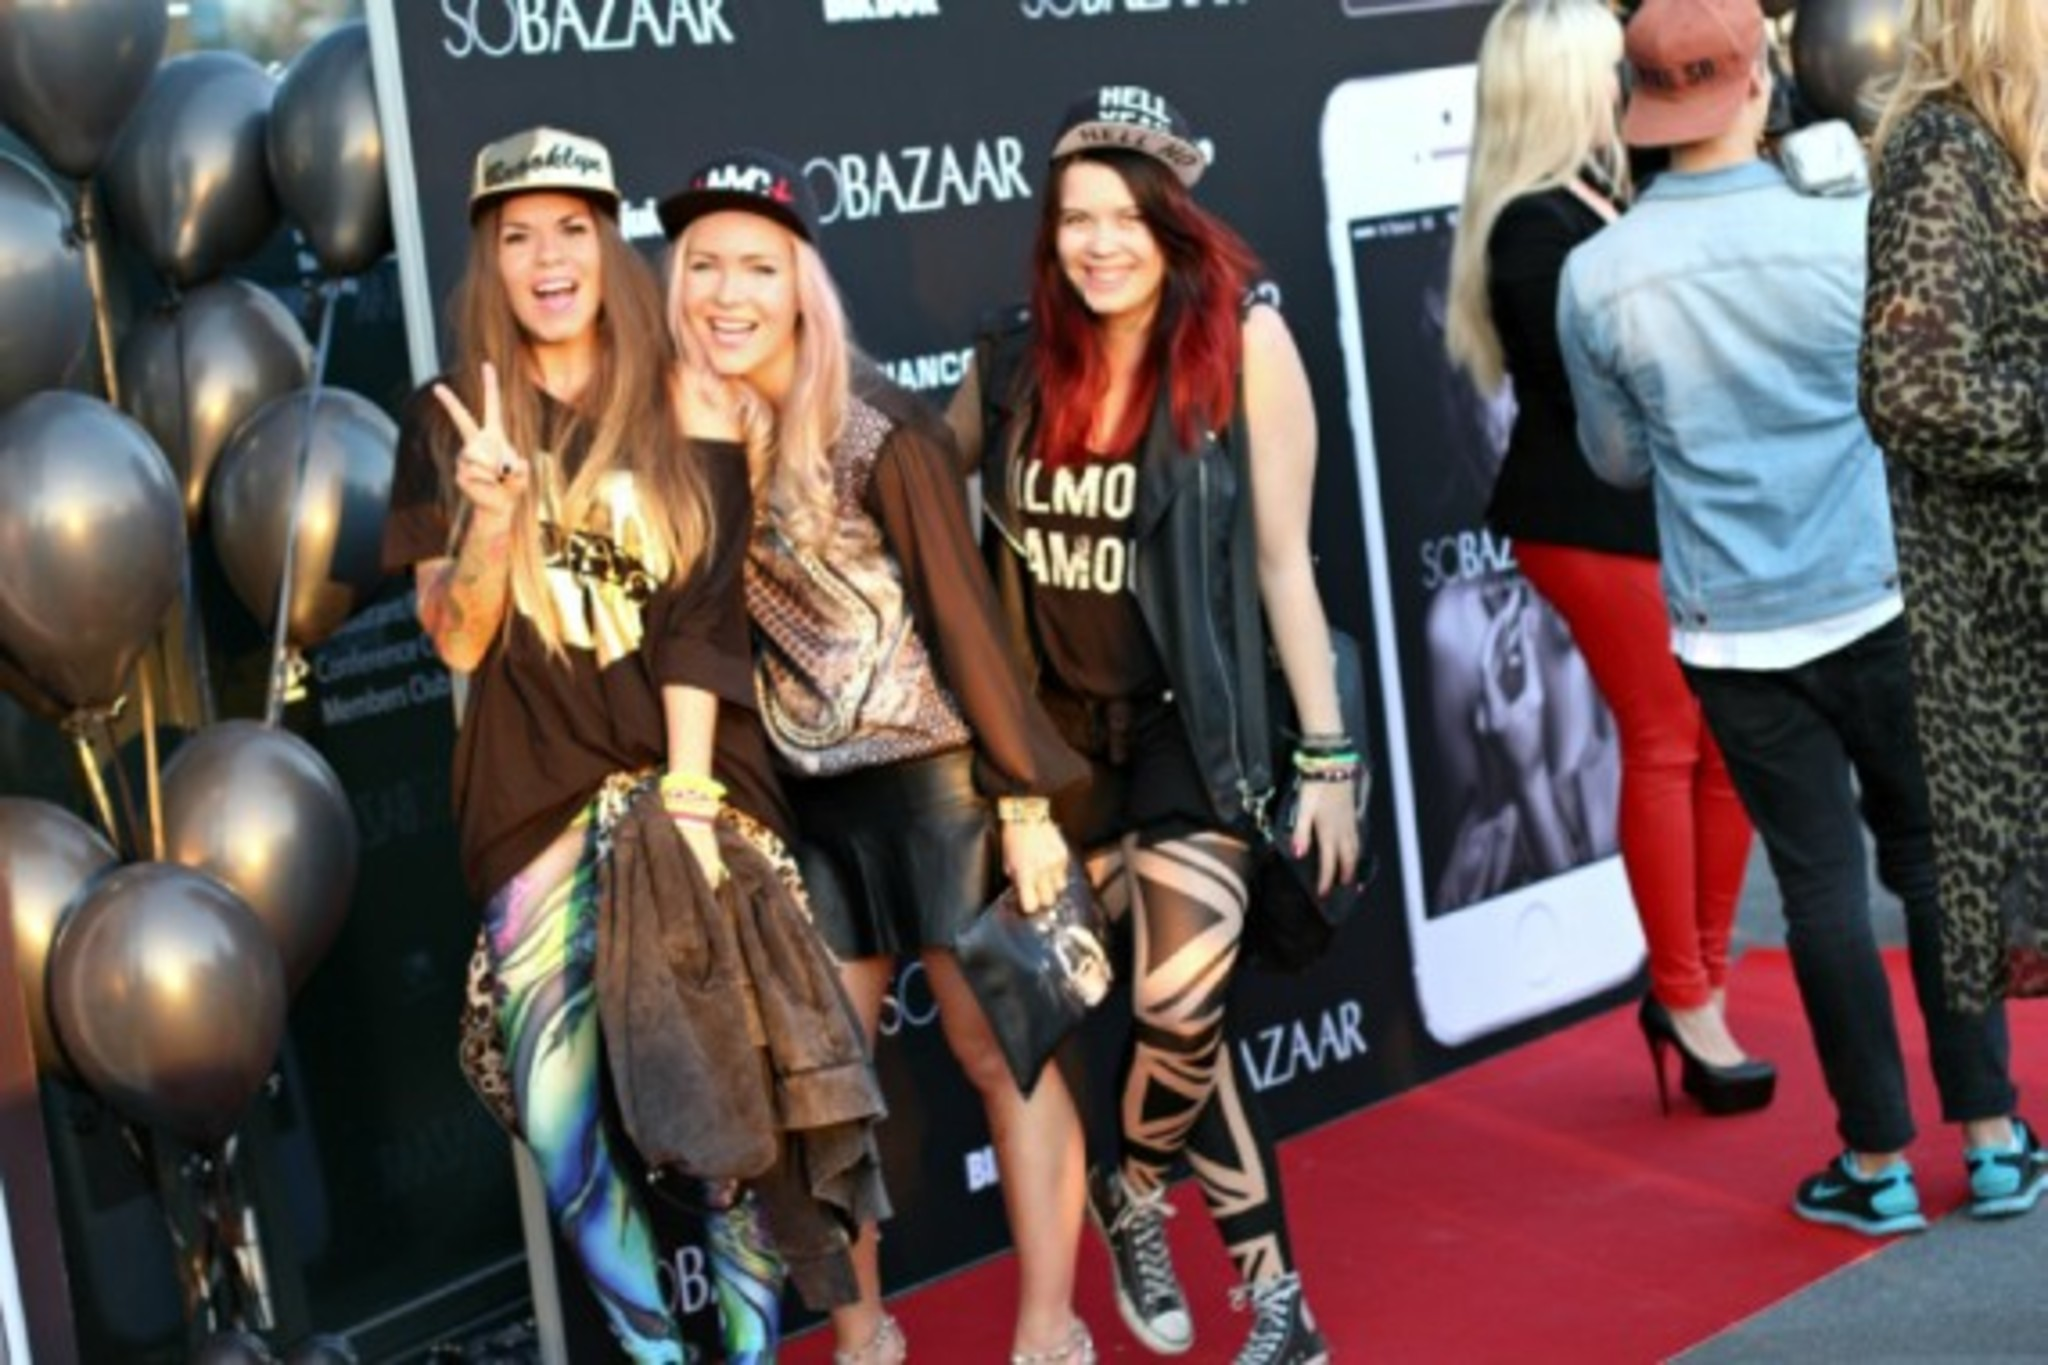 Le Bloggers at VIP SOBAZAAR event for LADY GAGA concert.